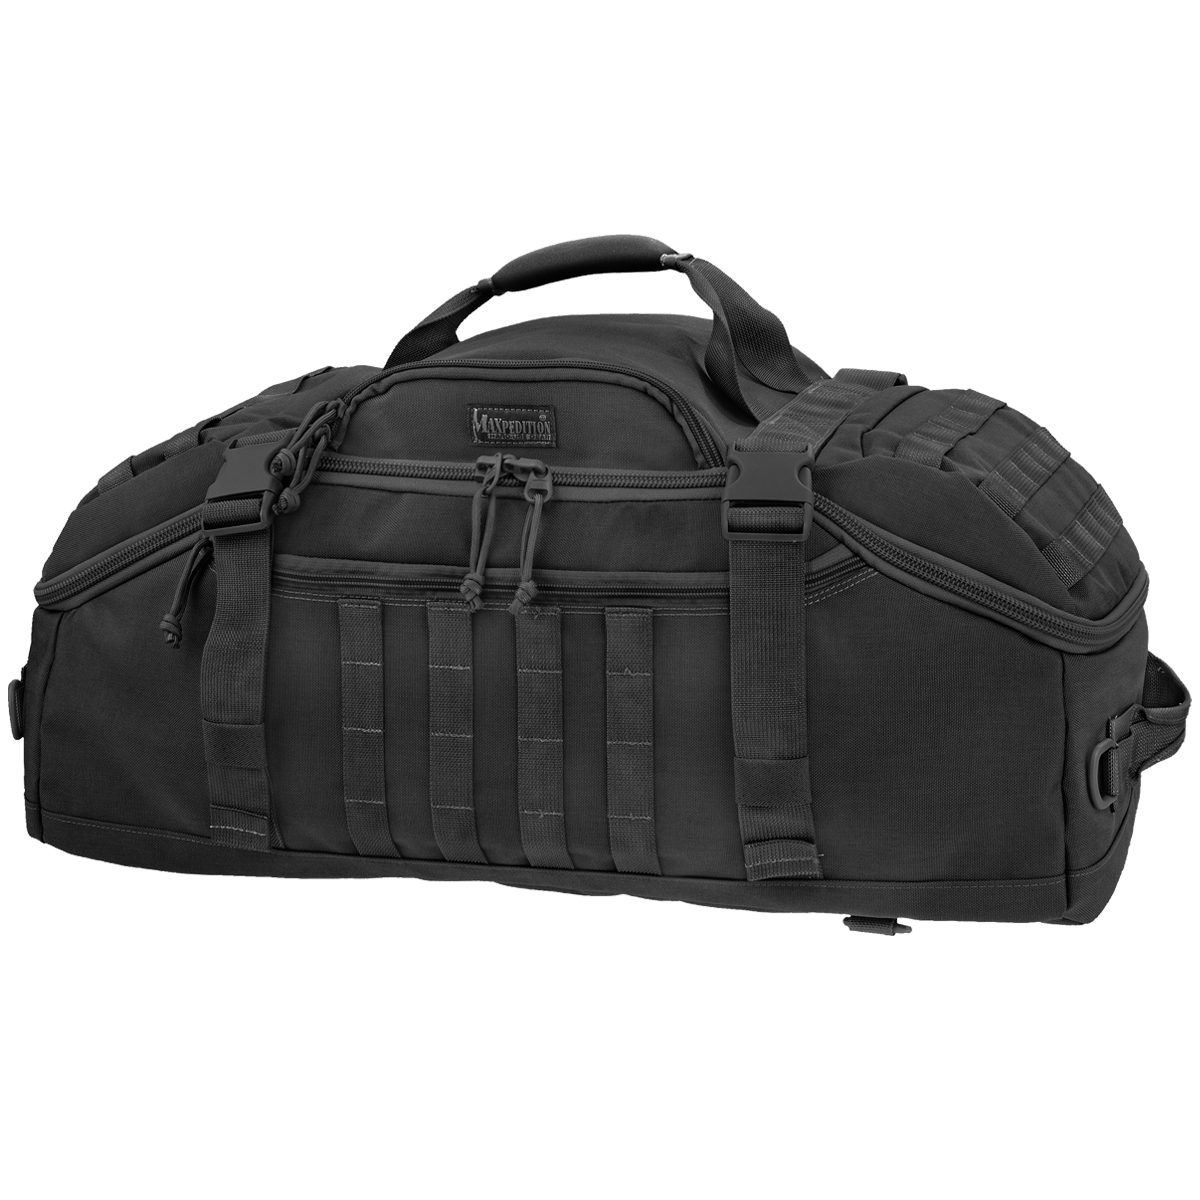 b272446e17f9 Maxpedition Doppelduffel Adventure Bag MOLLE Luggage Pack Carryall ...